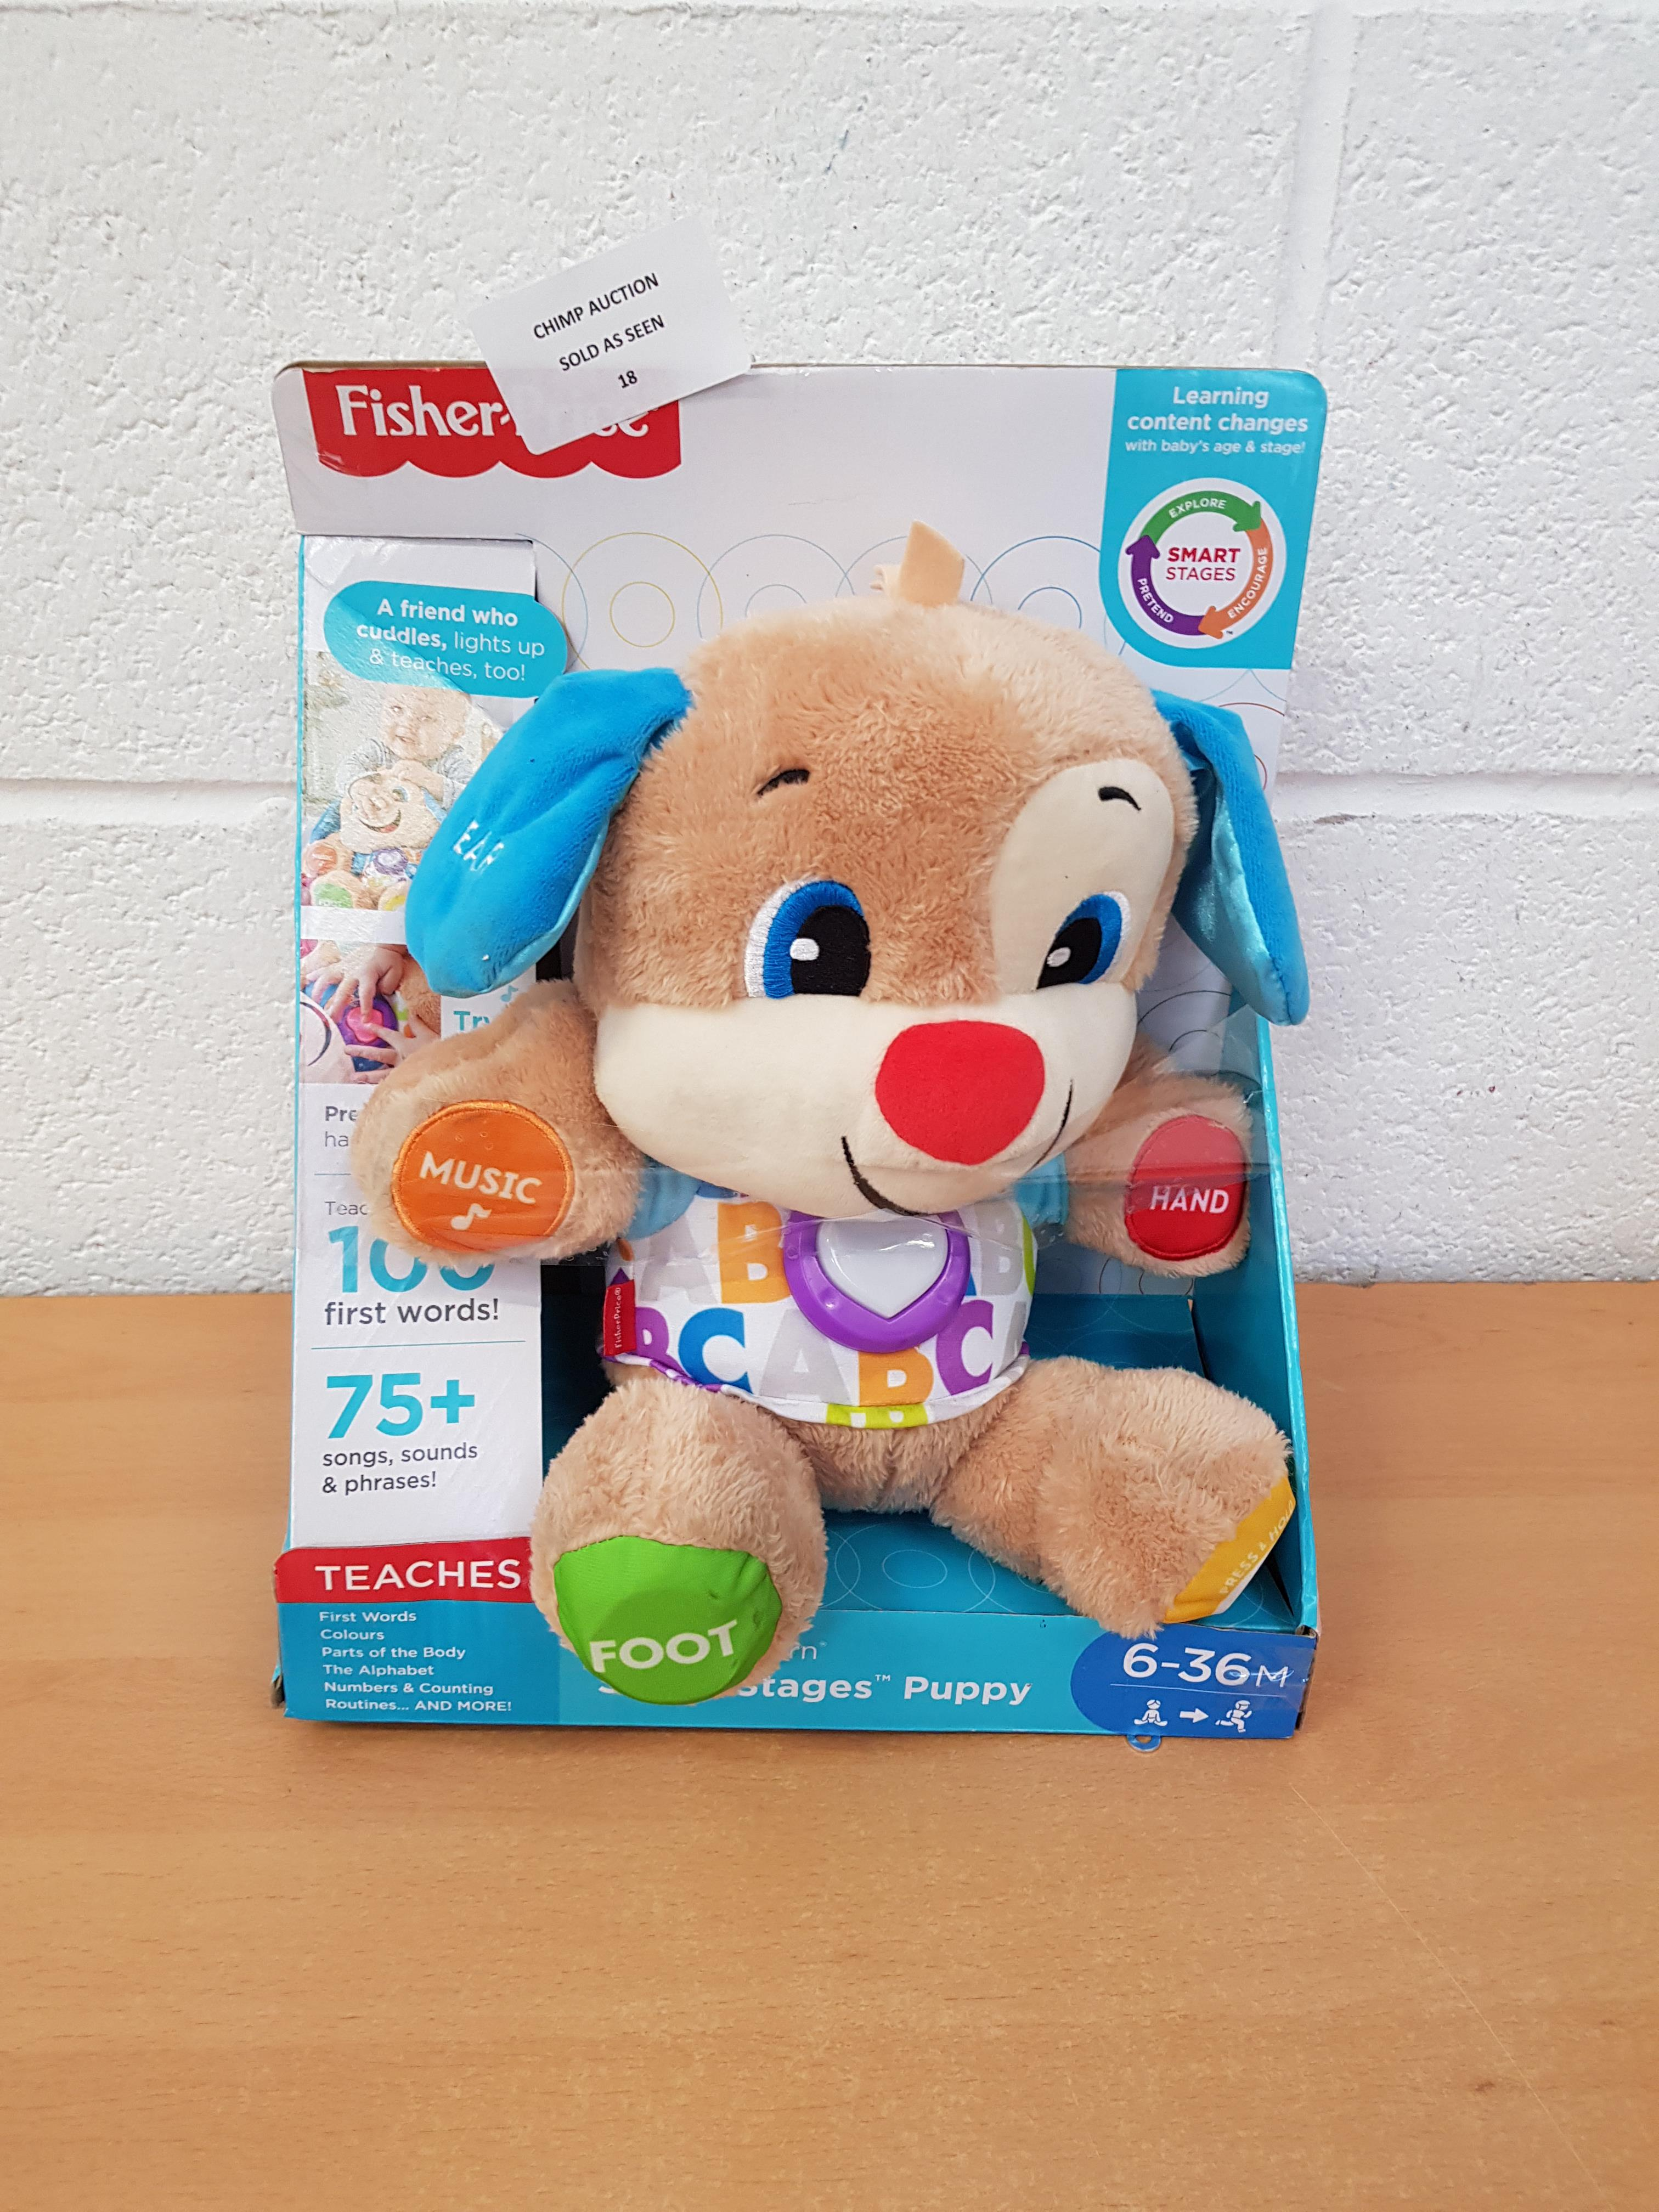 Lot 18 - Fisher Price Stages Puppy Interactive Playset